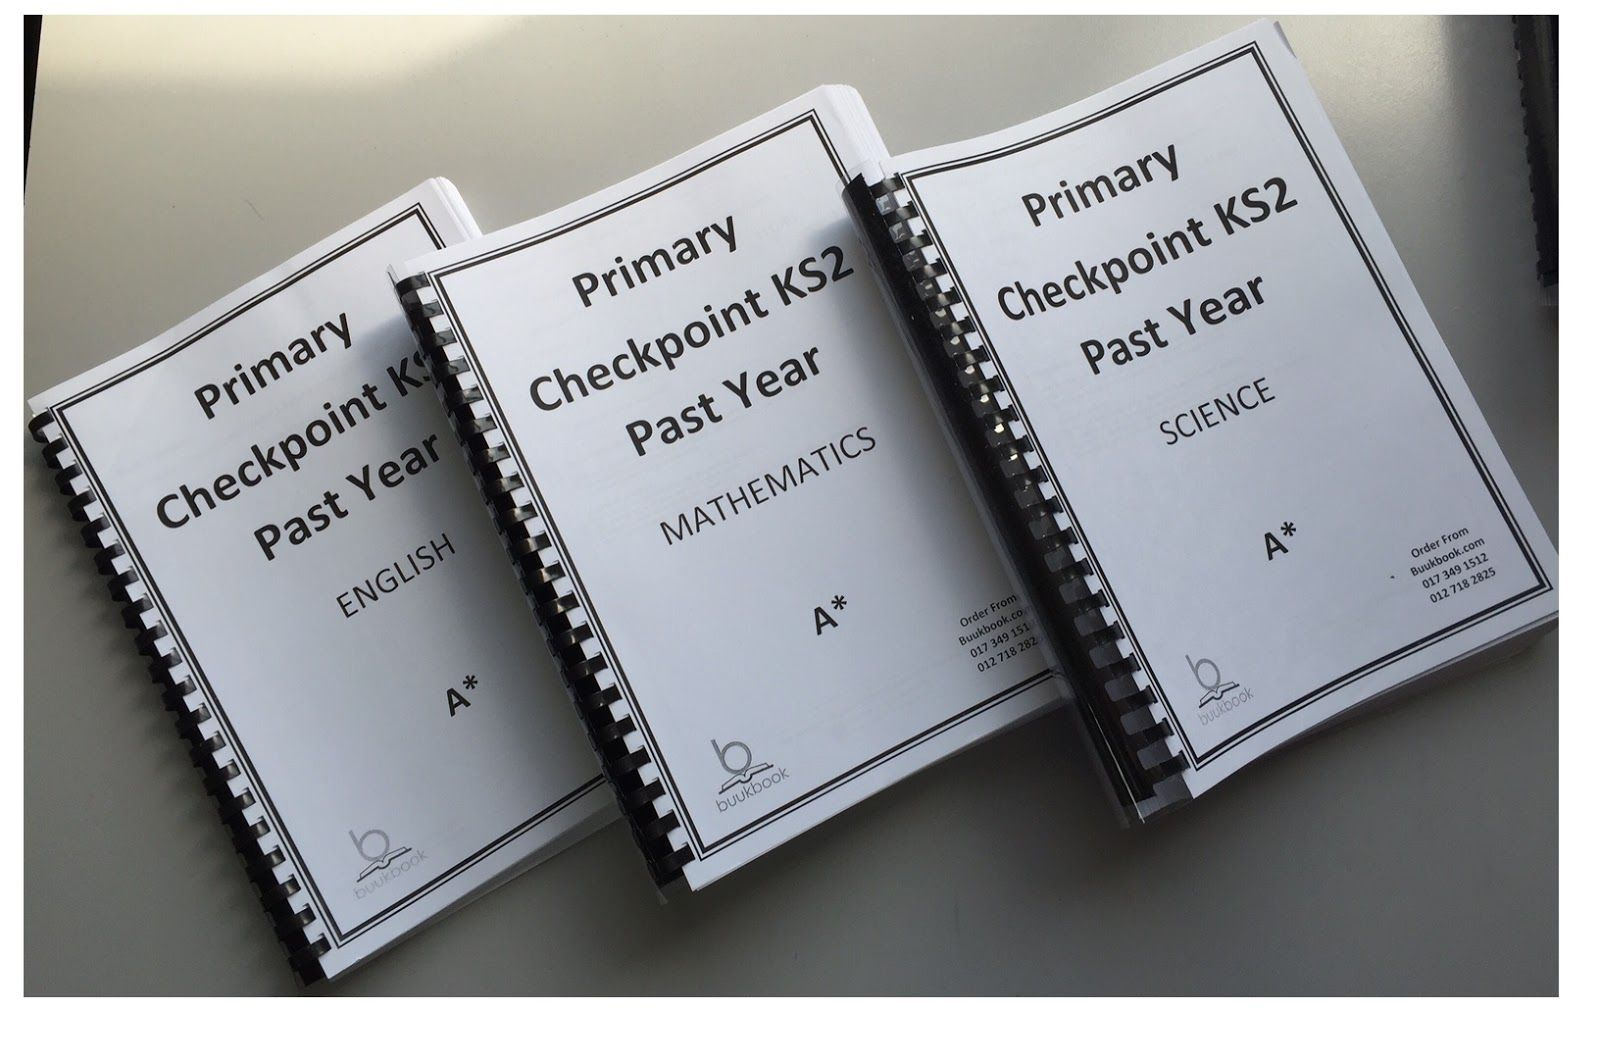 Igcse Maths Worksheets   Printable Worksheets and Activities for Teachers [ 1061 x 1600 Pixel ]